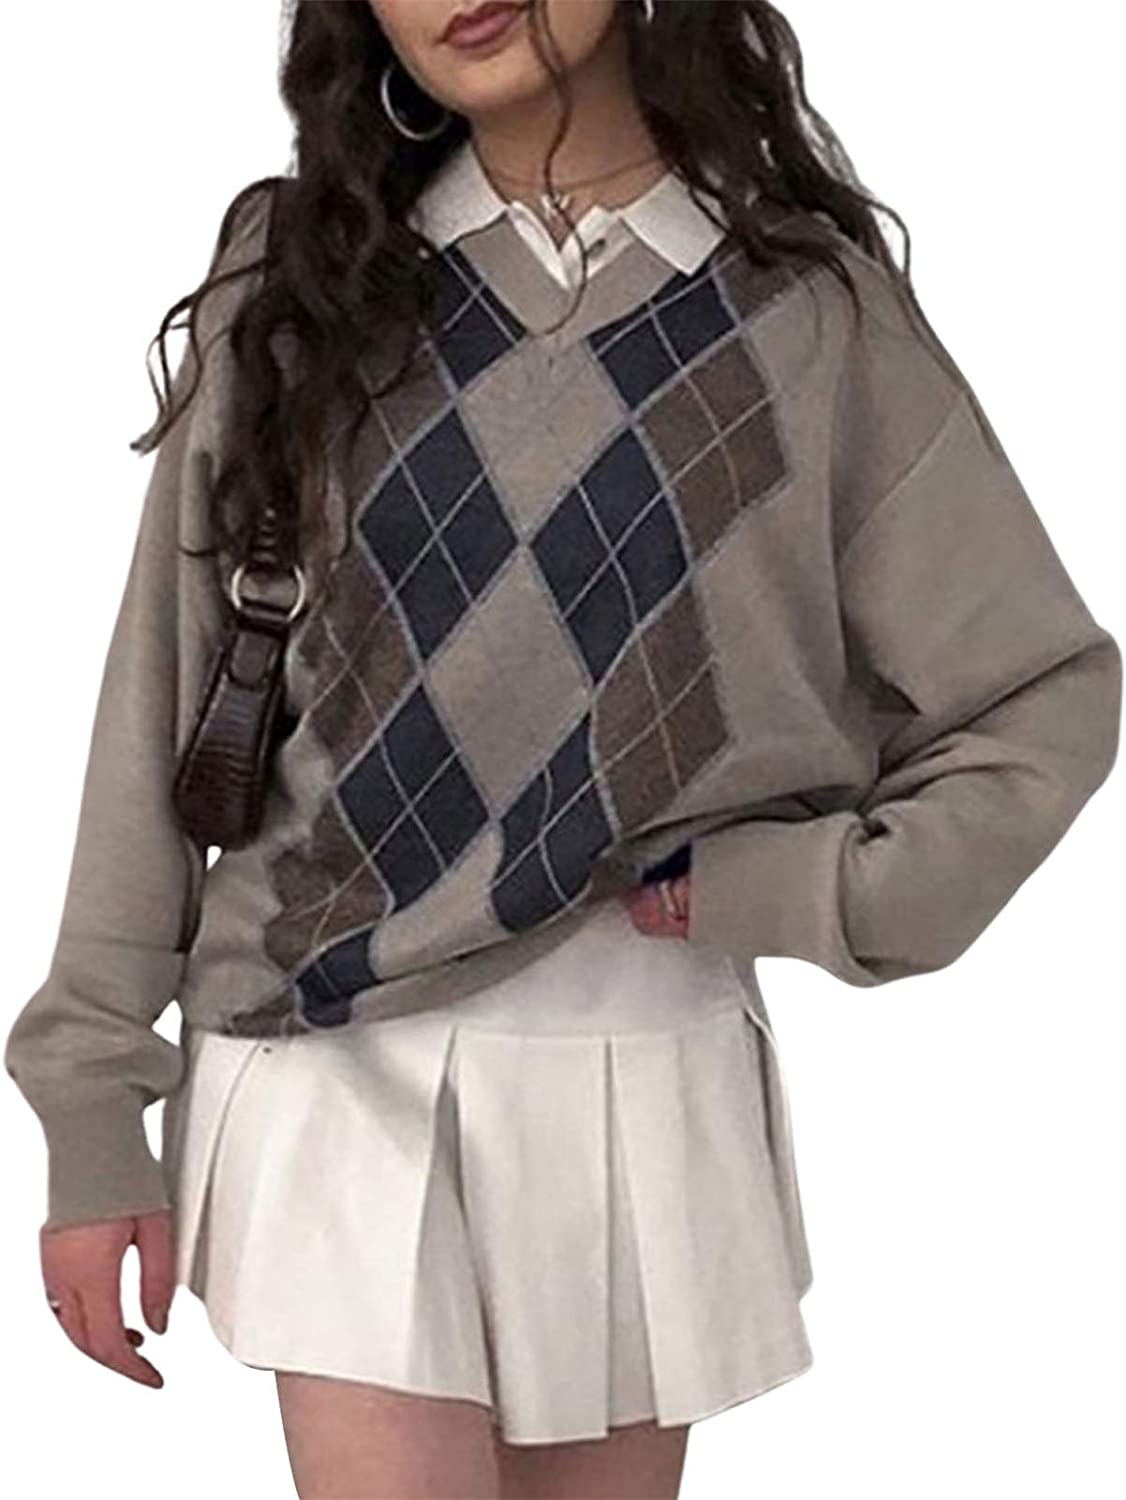 Women Casual Long Sleeve Knitted Sweaters Streetwear Oversized Chunky Pullover Argyle Plaid Knit Jumper Tops